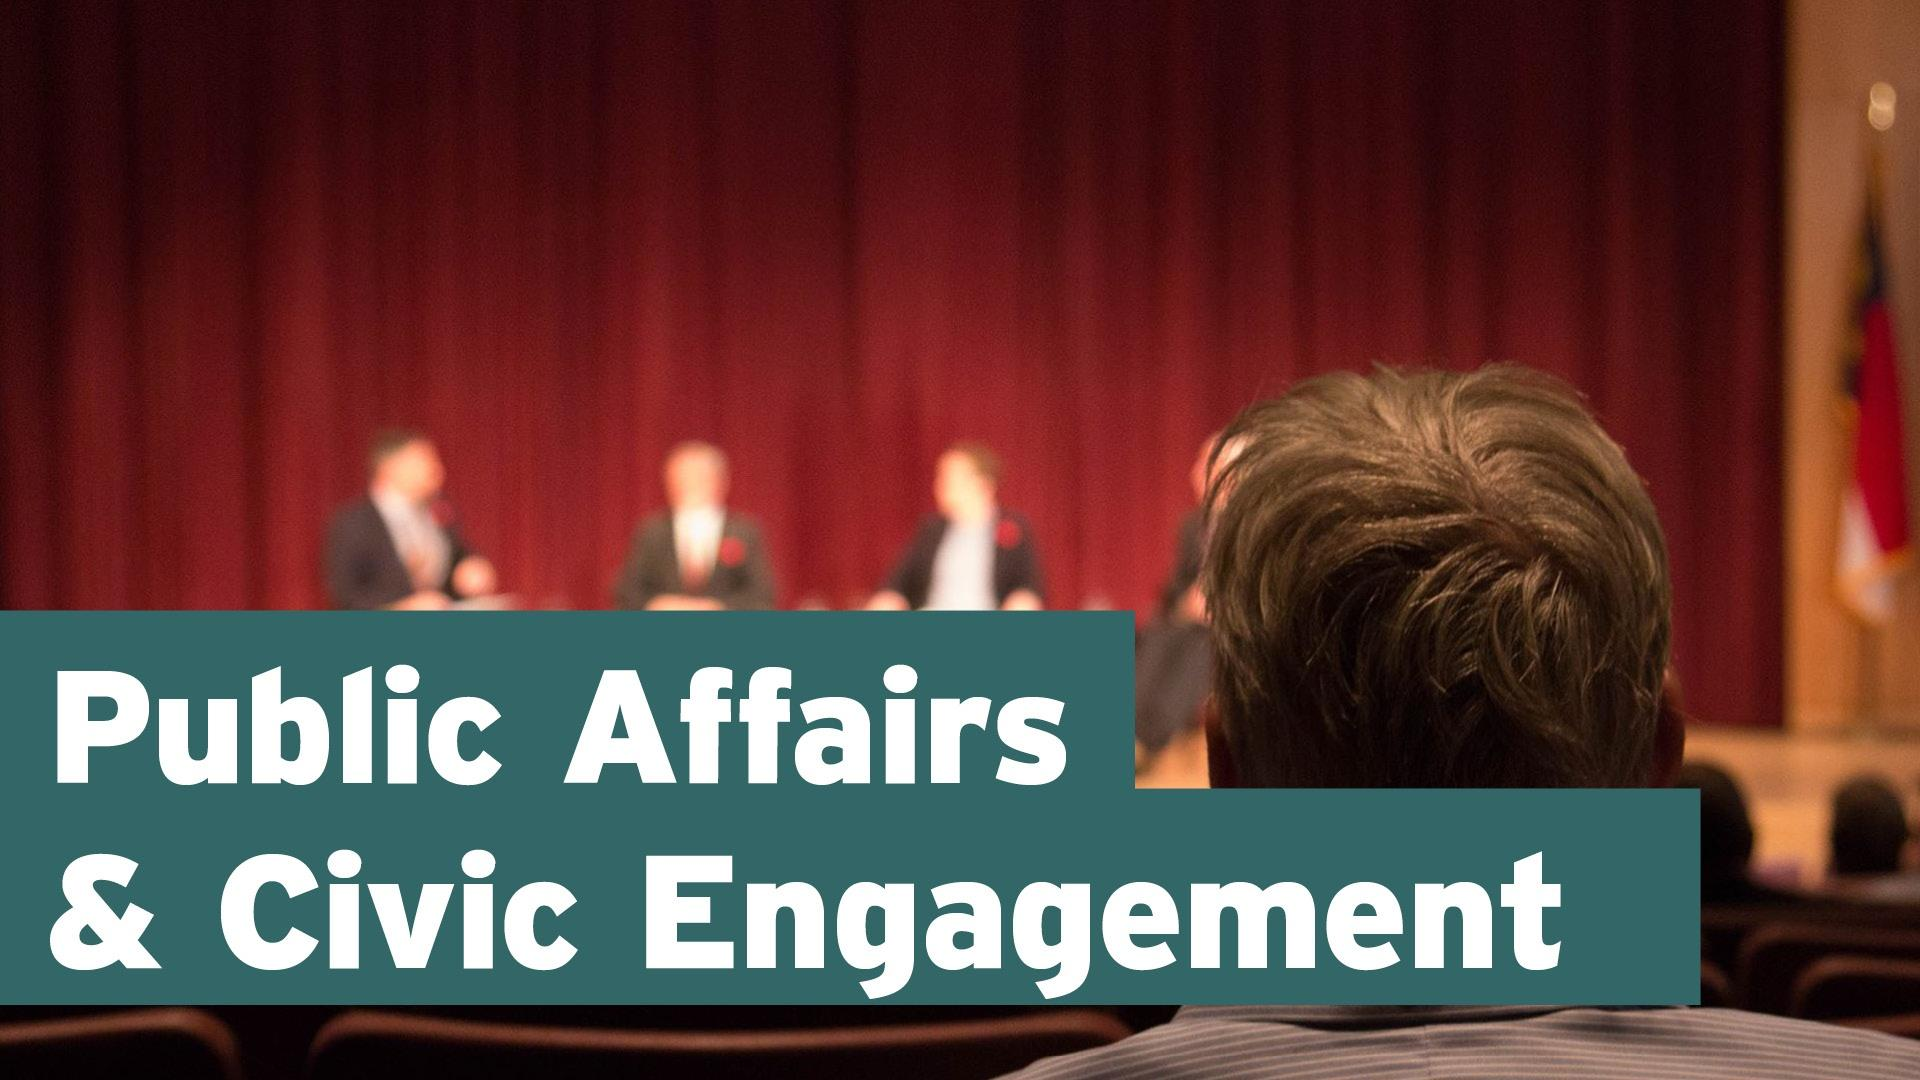 Public Affairs & Civic Engagement